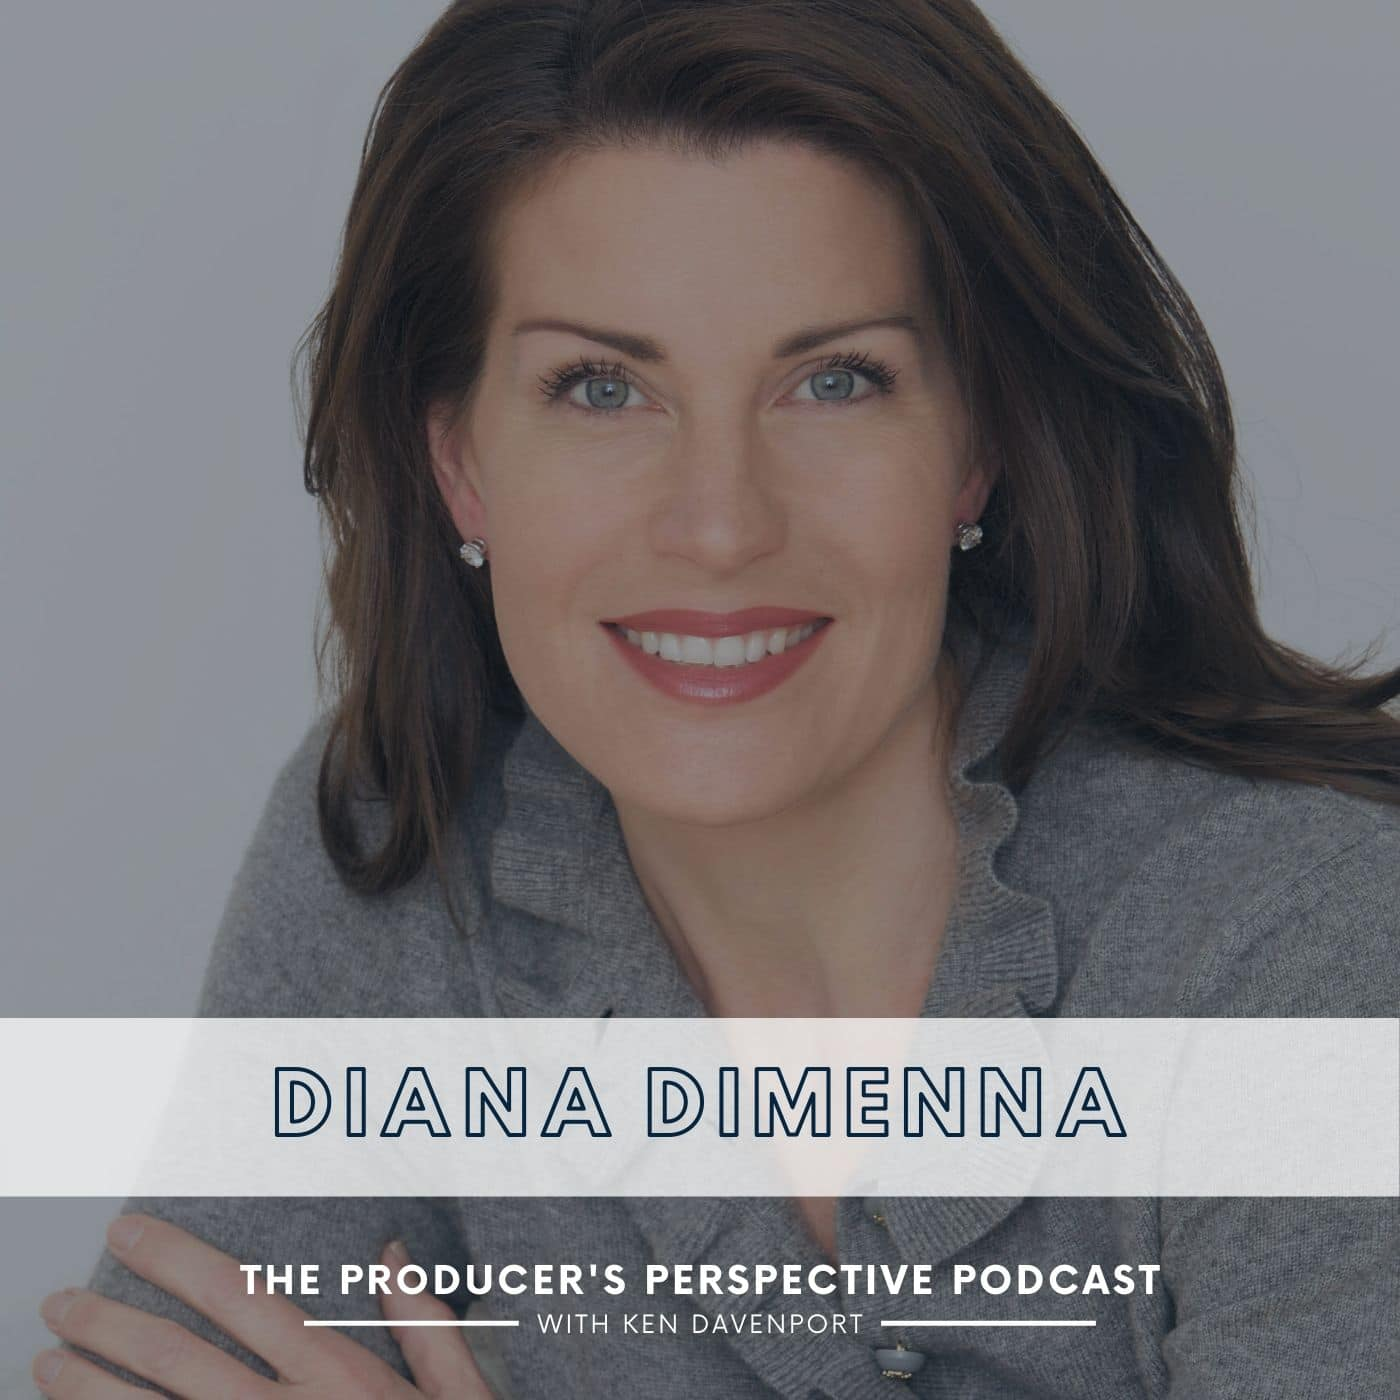 The Producer's Perspective Episode 211 Diana DiMenna